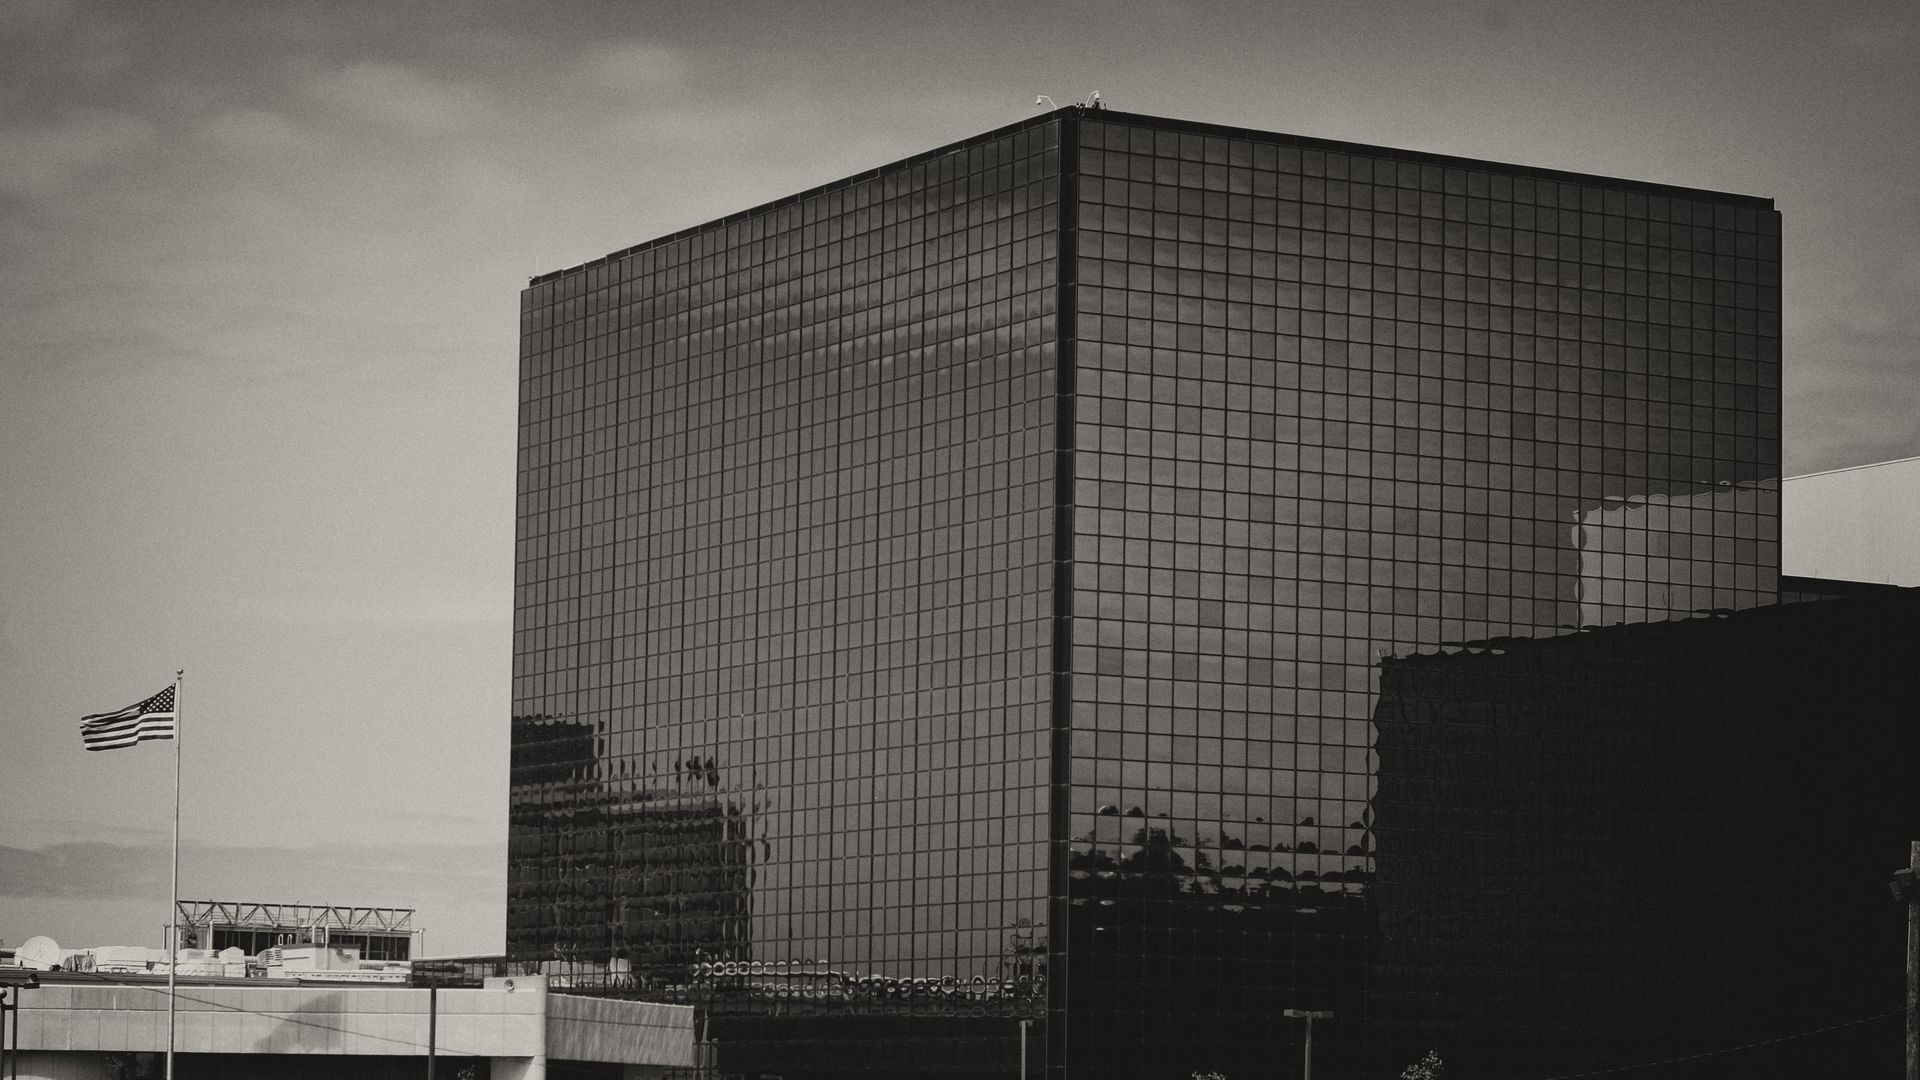 A grayscale photo of the headquarters of the National Security Agency